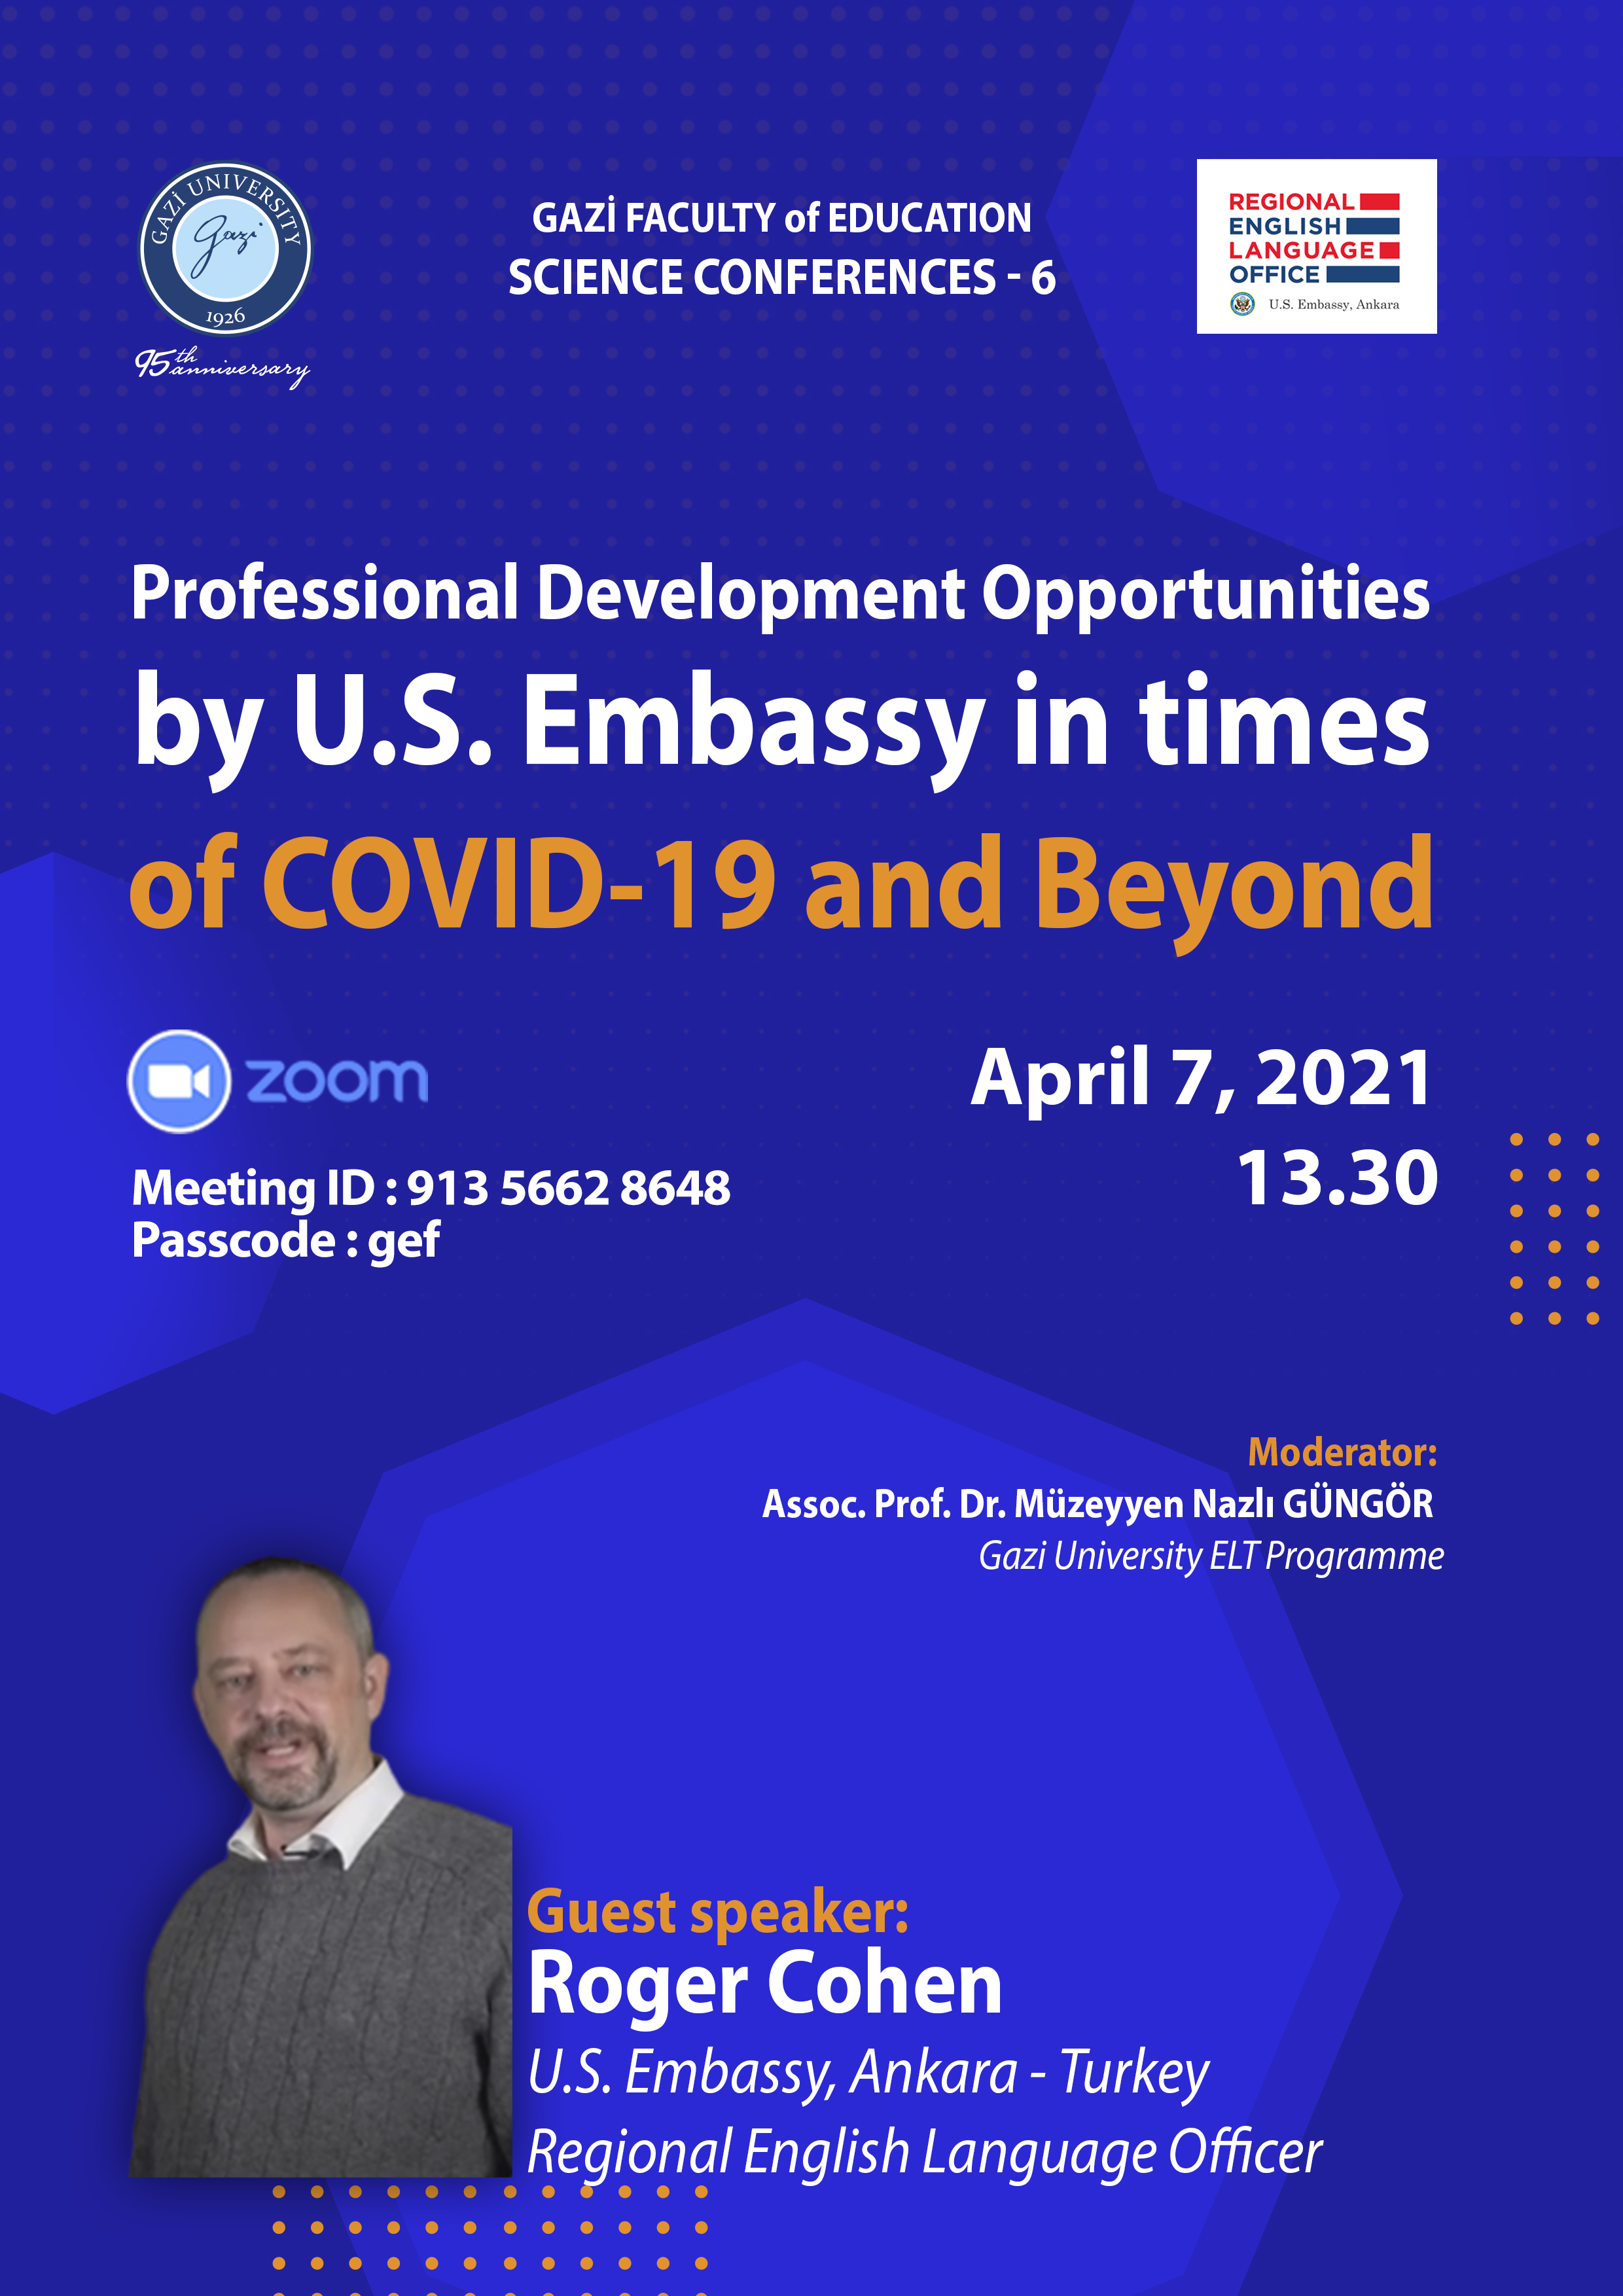 Professional Development Opportunities by U.S. Embassy in times of COVID-19 and Beyond